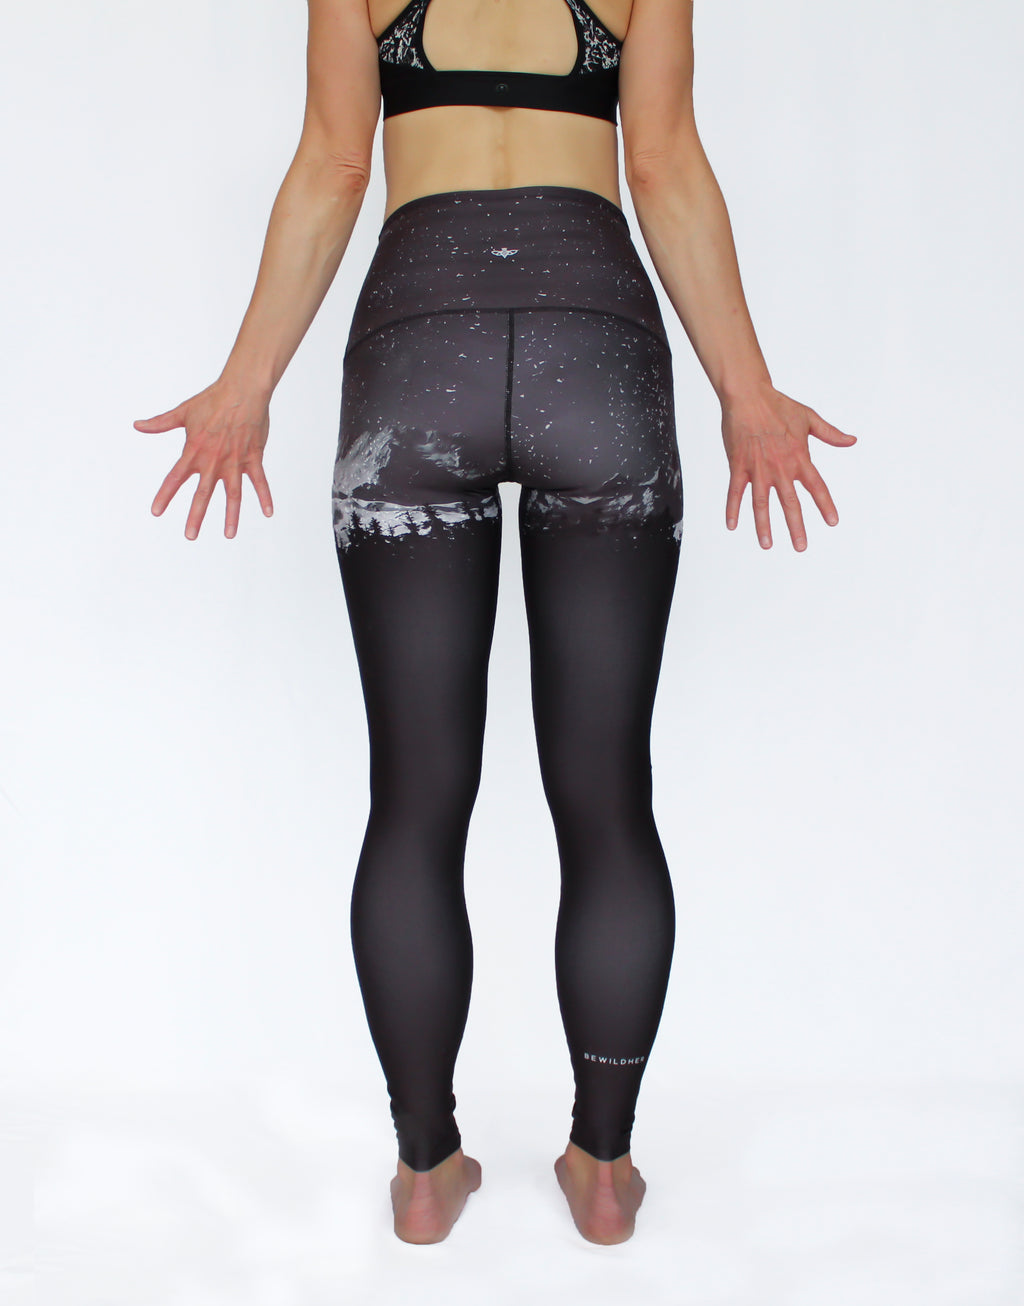 OCTOBER - The Backcountry Black Leggings - Size Small